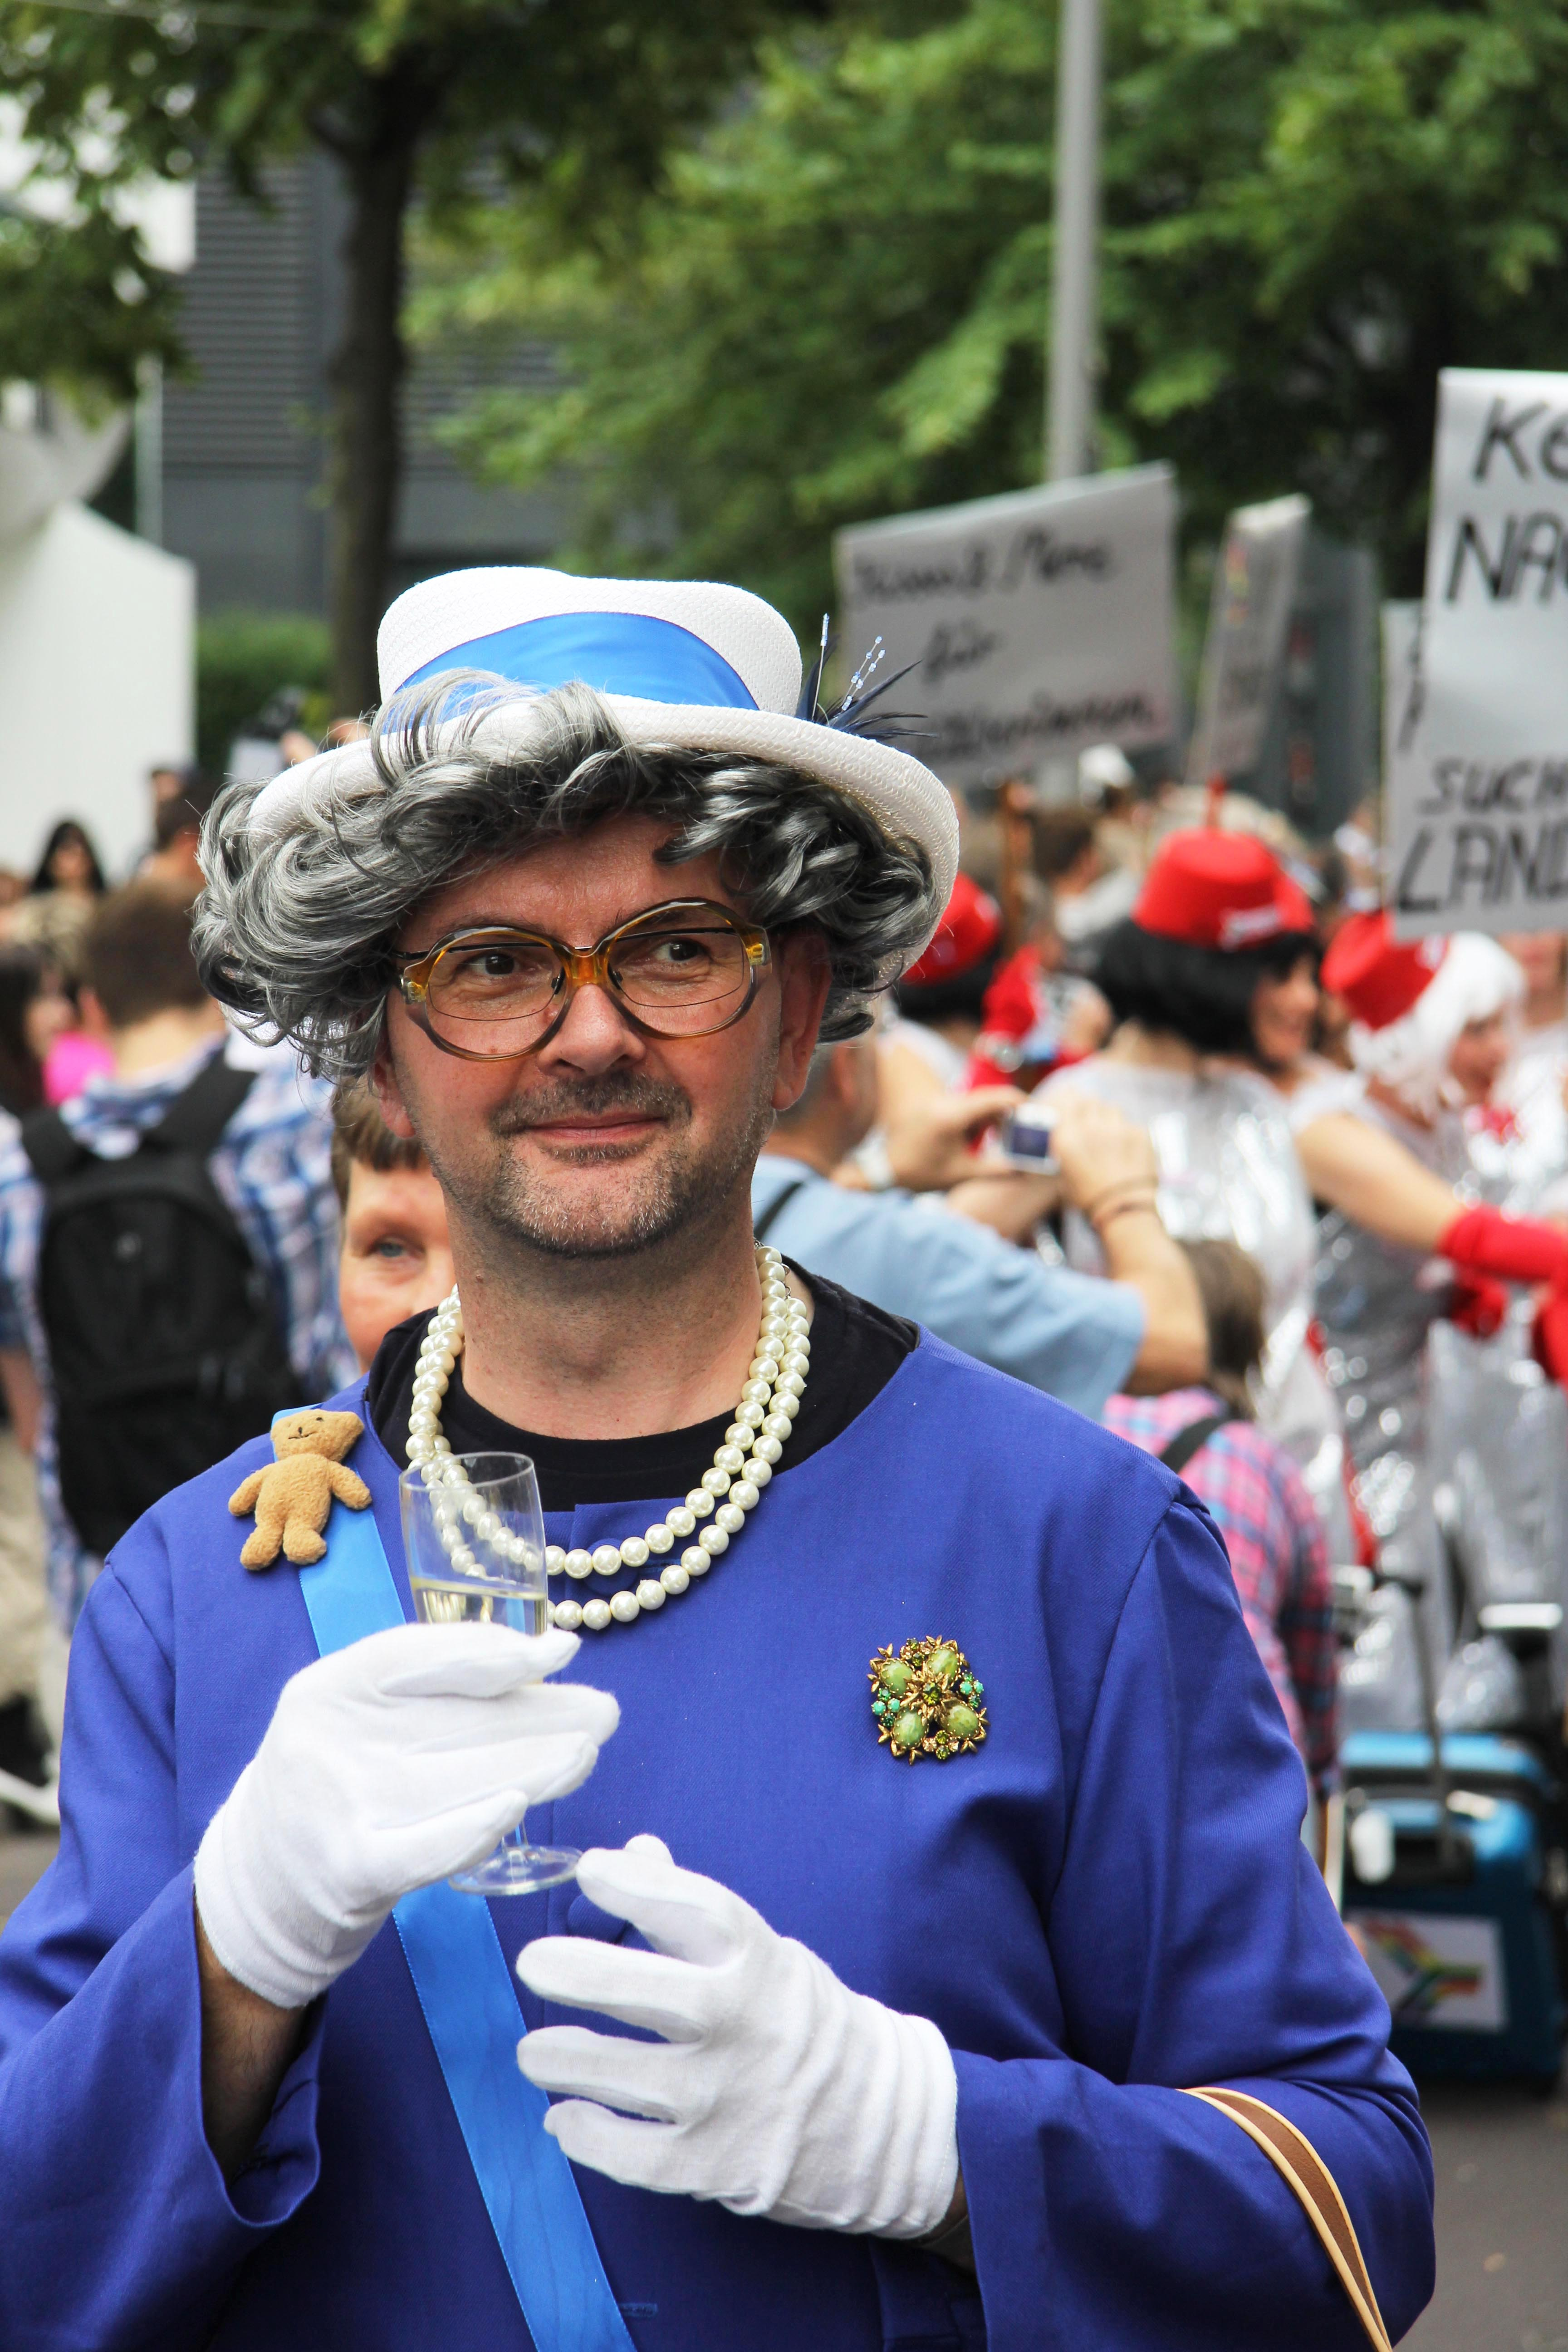 The Queen: A reveller at the Christopher Street Day (CSD) Parade in Berlin